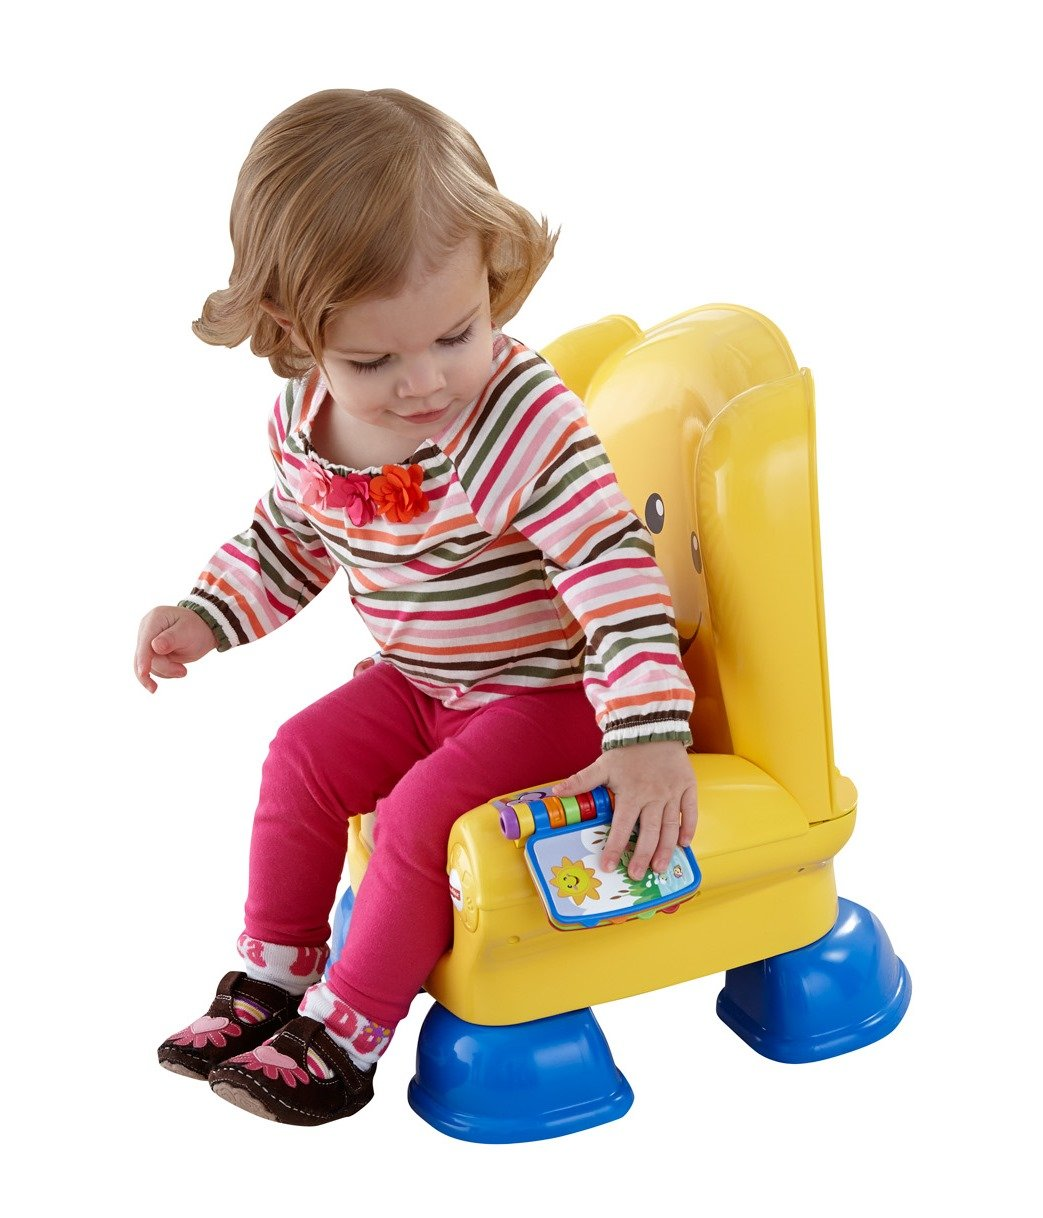 baby toddler chair fisher price click clack smart stages laugh and learn new toy